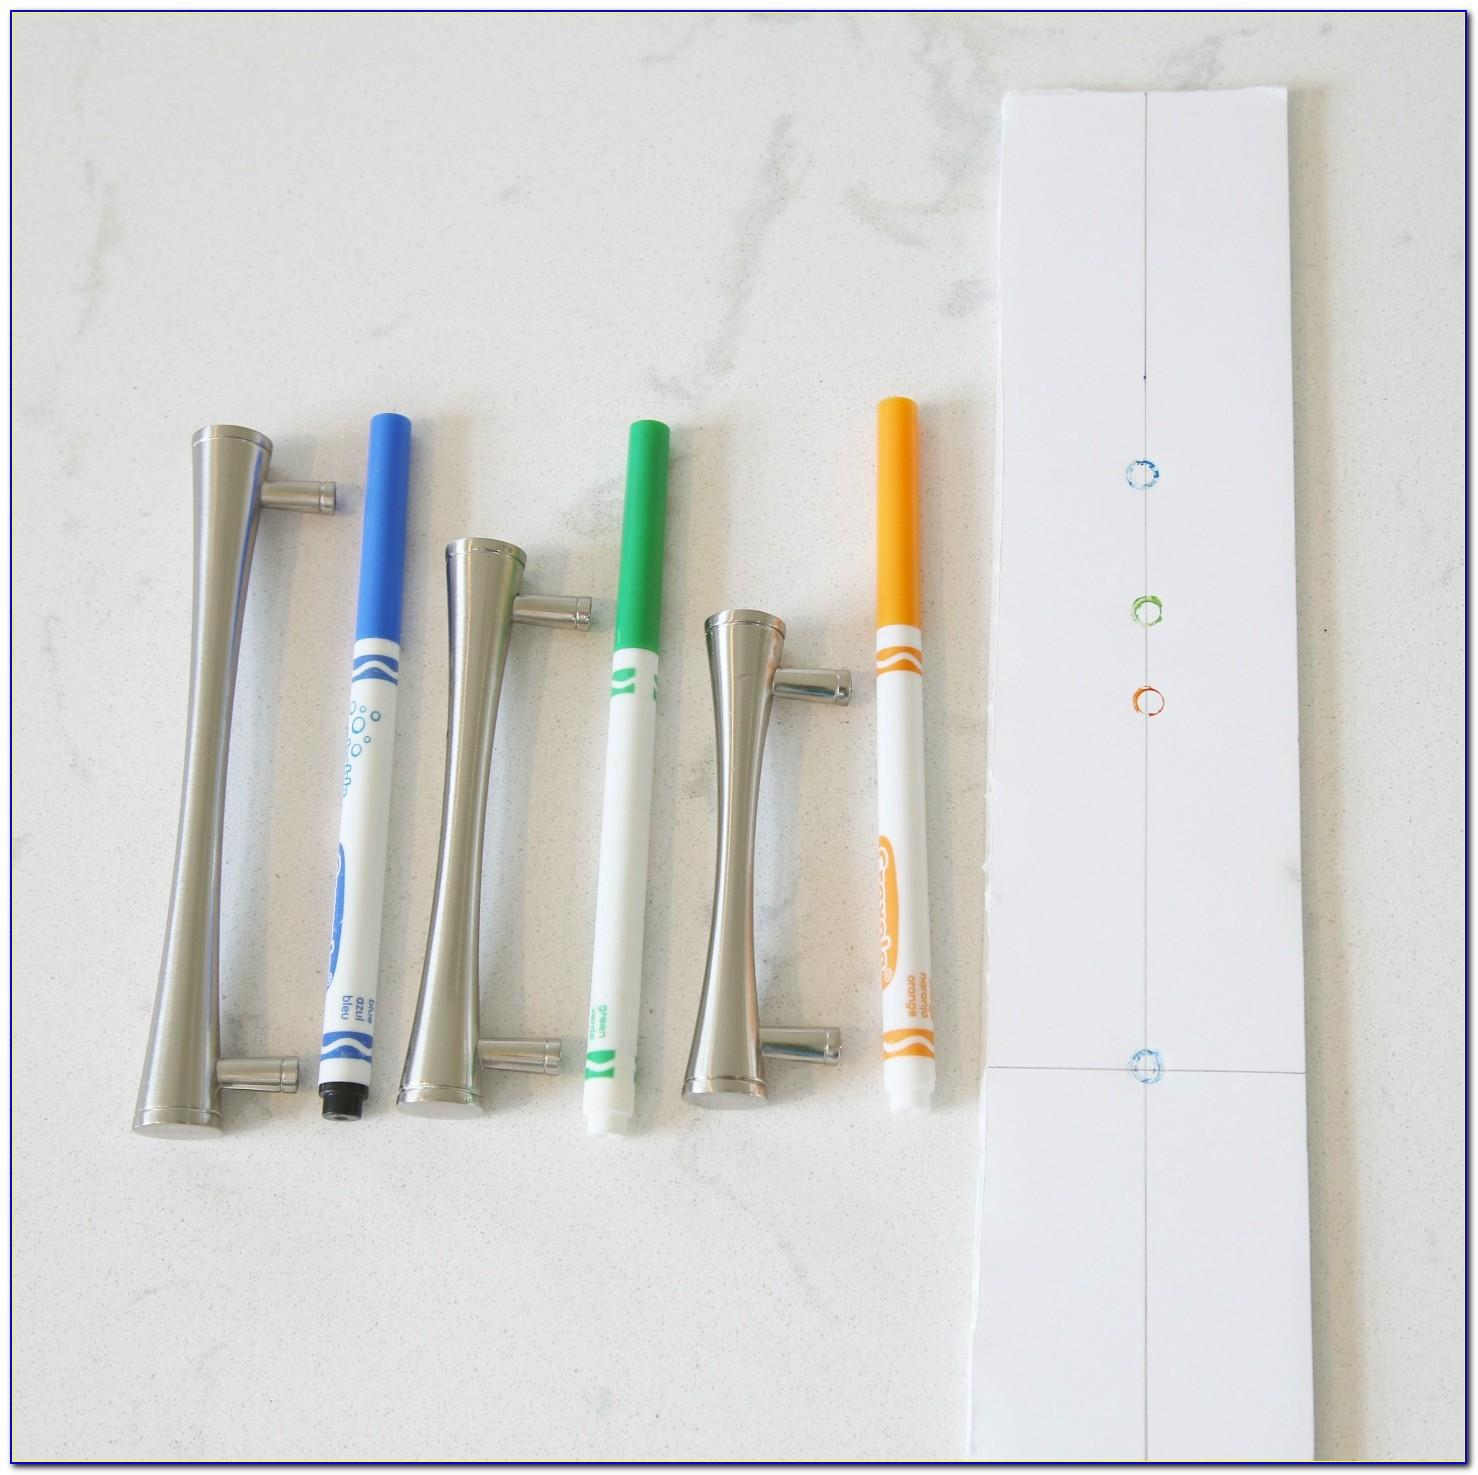 Template For Installing Cabinet Handles